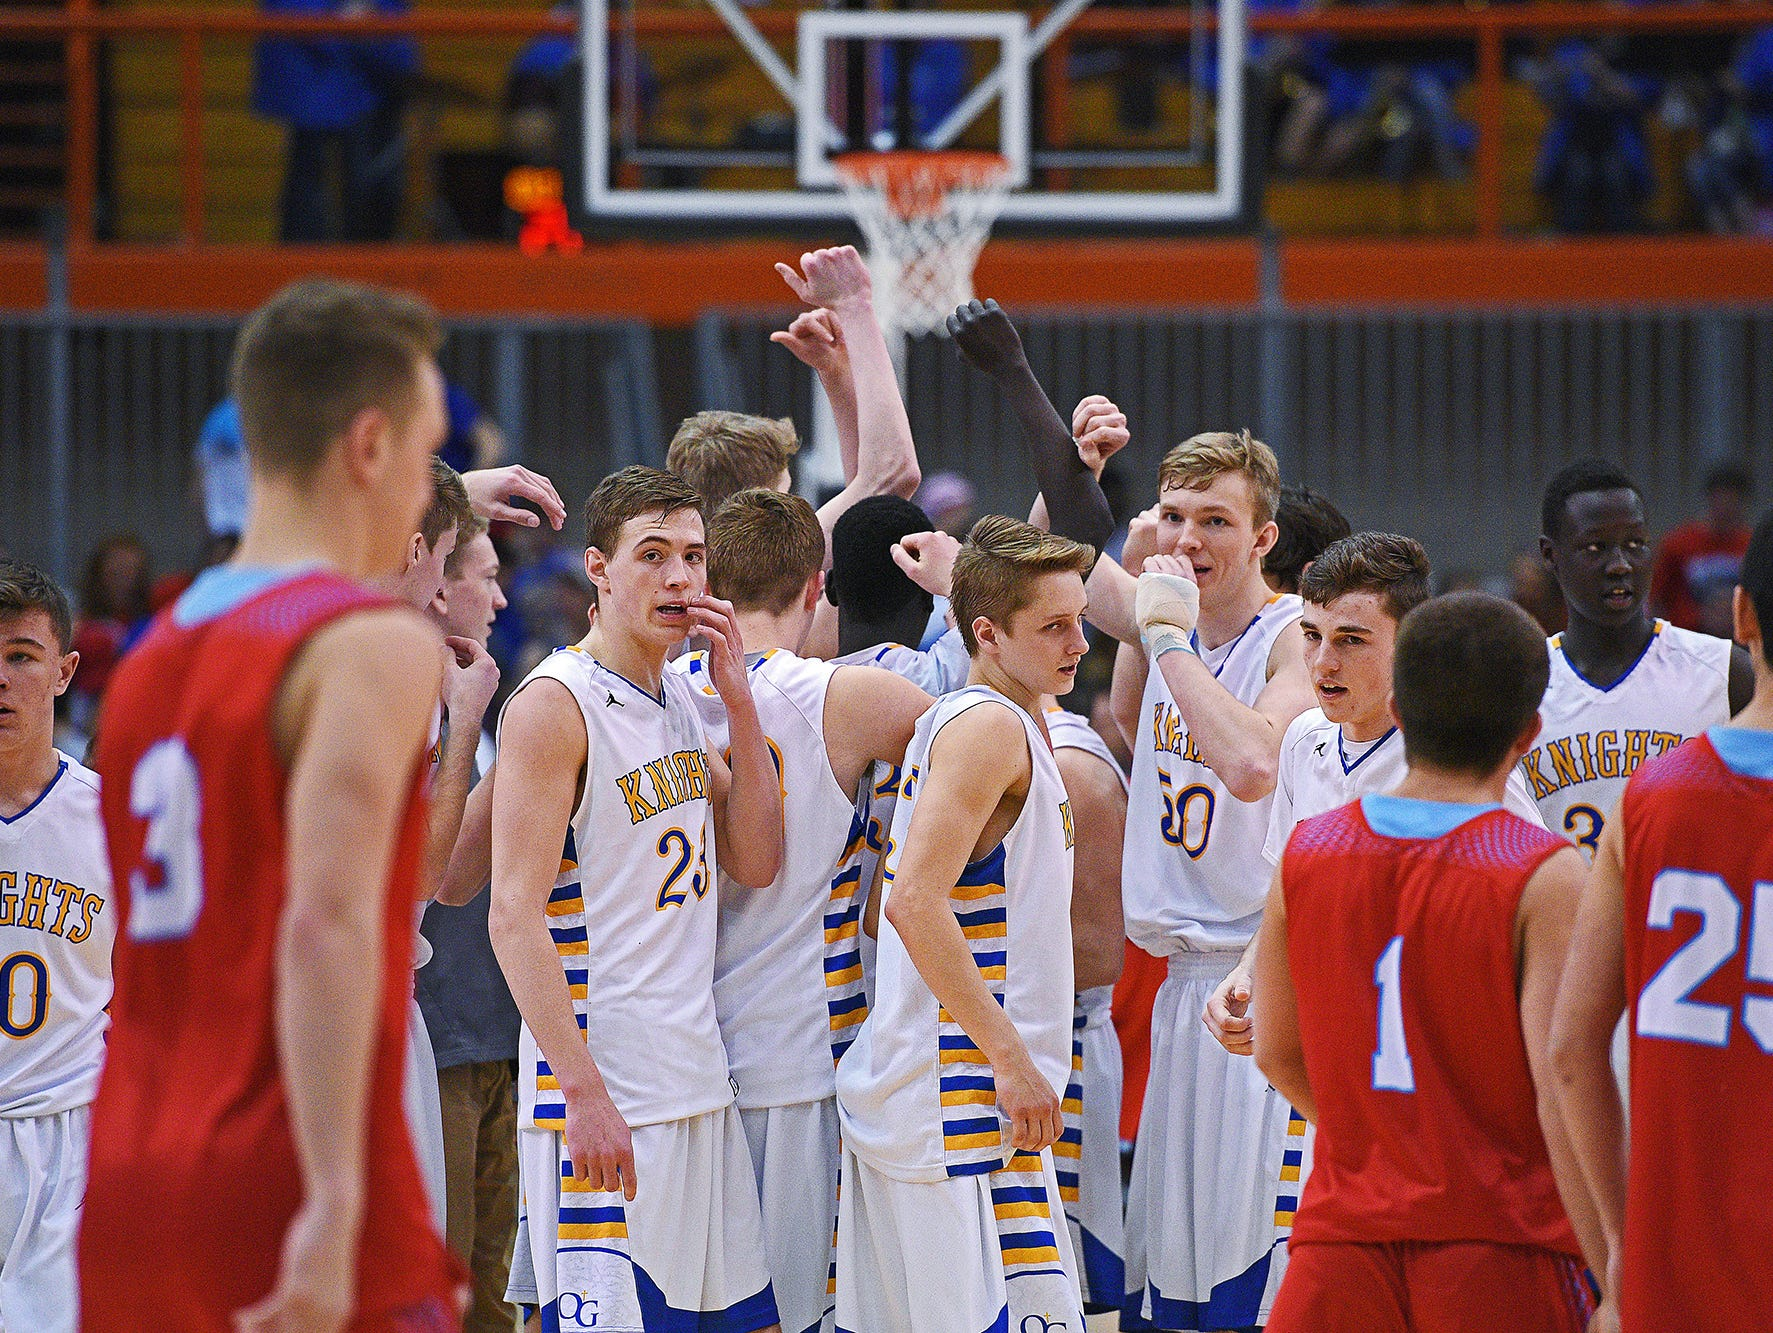 O'Gorman players huddle after their 64-44 win over Lincoln in a 2017 SDHSAA Class AA State Boys Basketball semifinal game Friday, March 17, 2017, at Rushmore Plaza Civic Center in Rapid City.